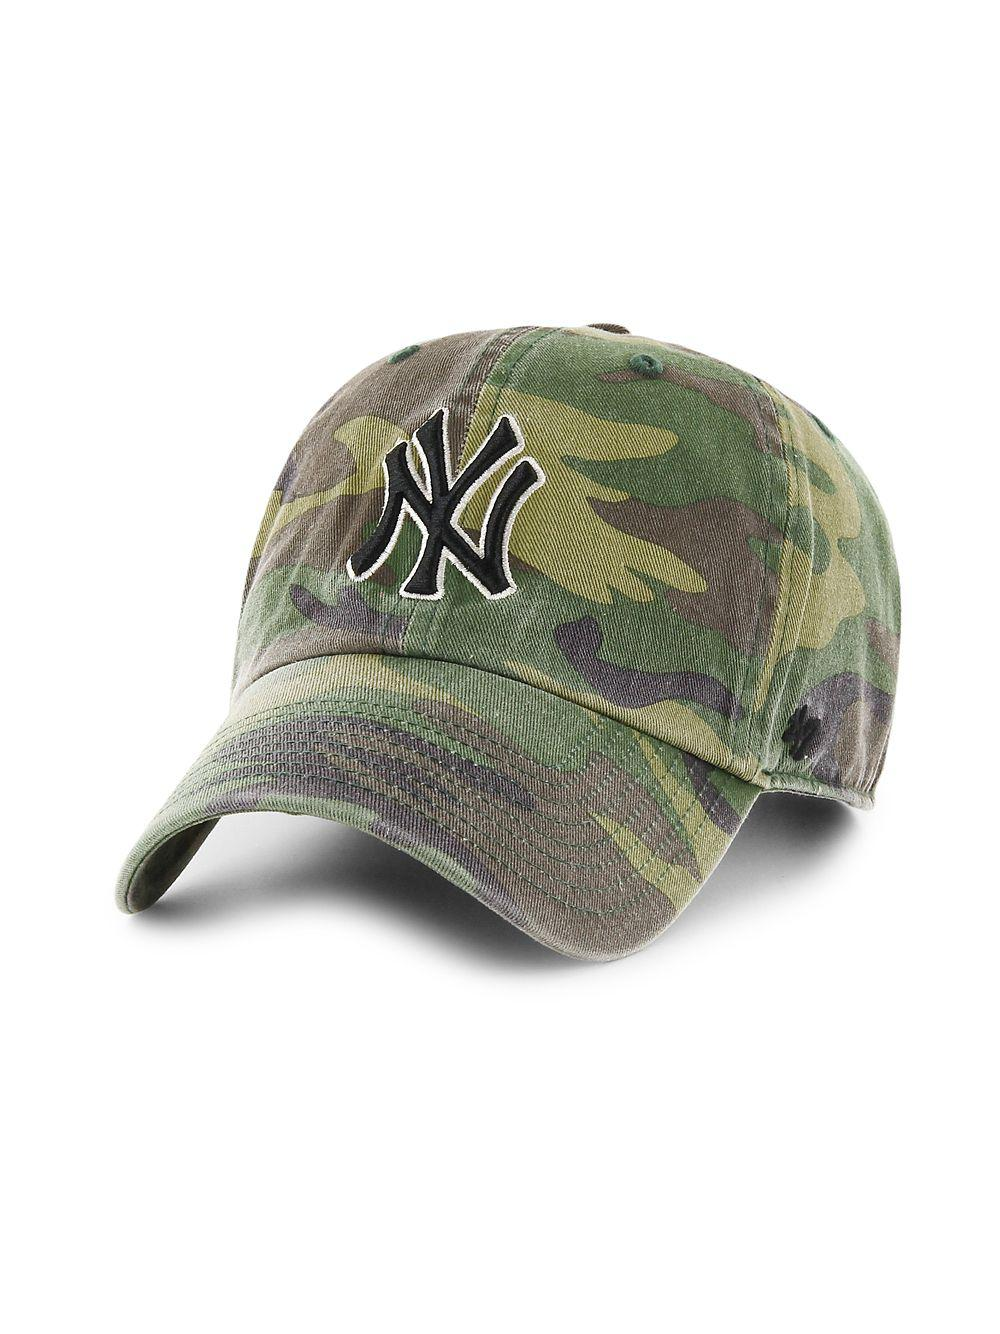 9af1980e05c Lyst - 47 Brand Clean Up Camouflage Cotton Baseball Cap in Green for Men